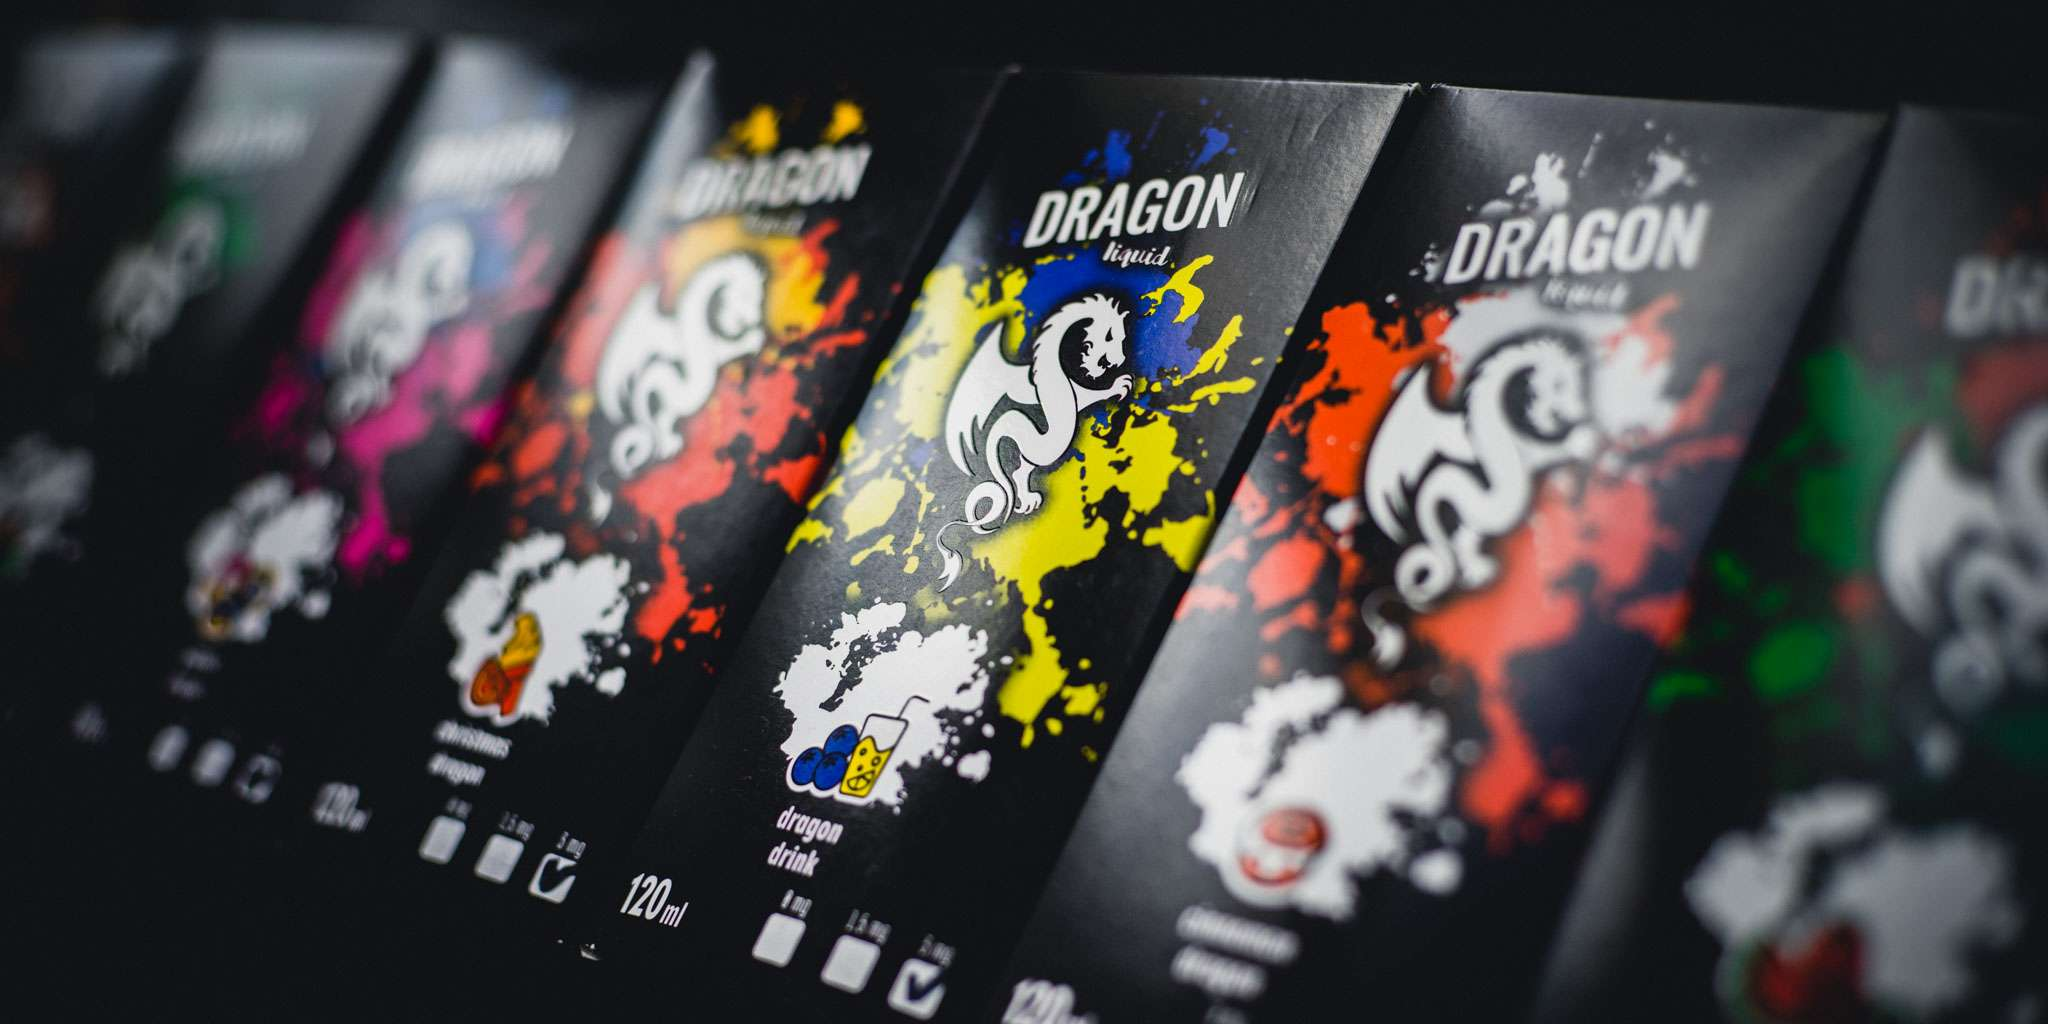 DRAGON LIQUID